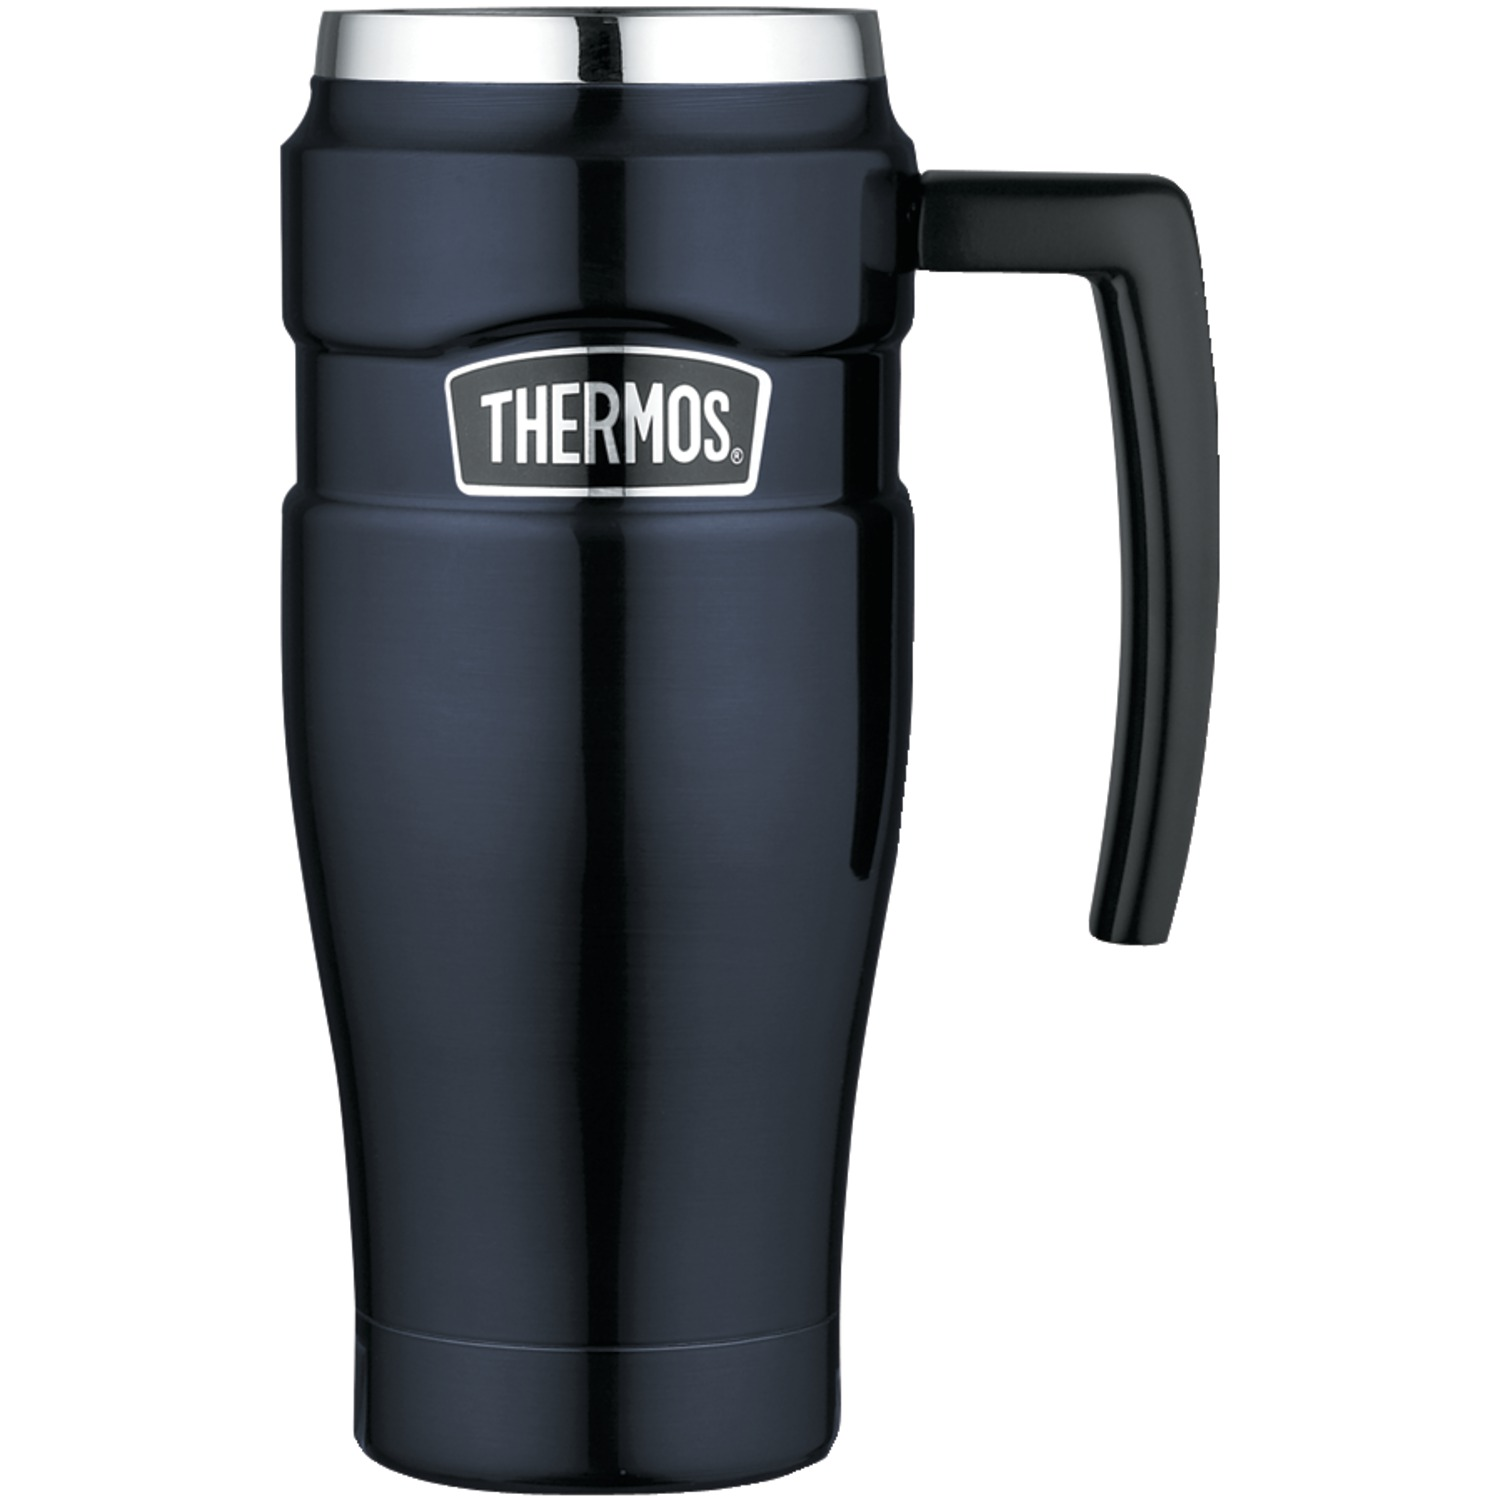 Thermos 16-ounce Stainless Steel Leak-proof Travel Mug